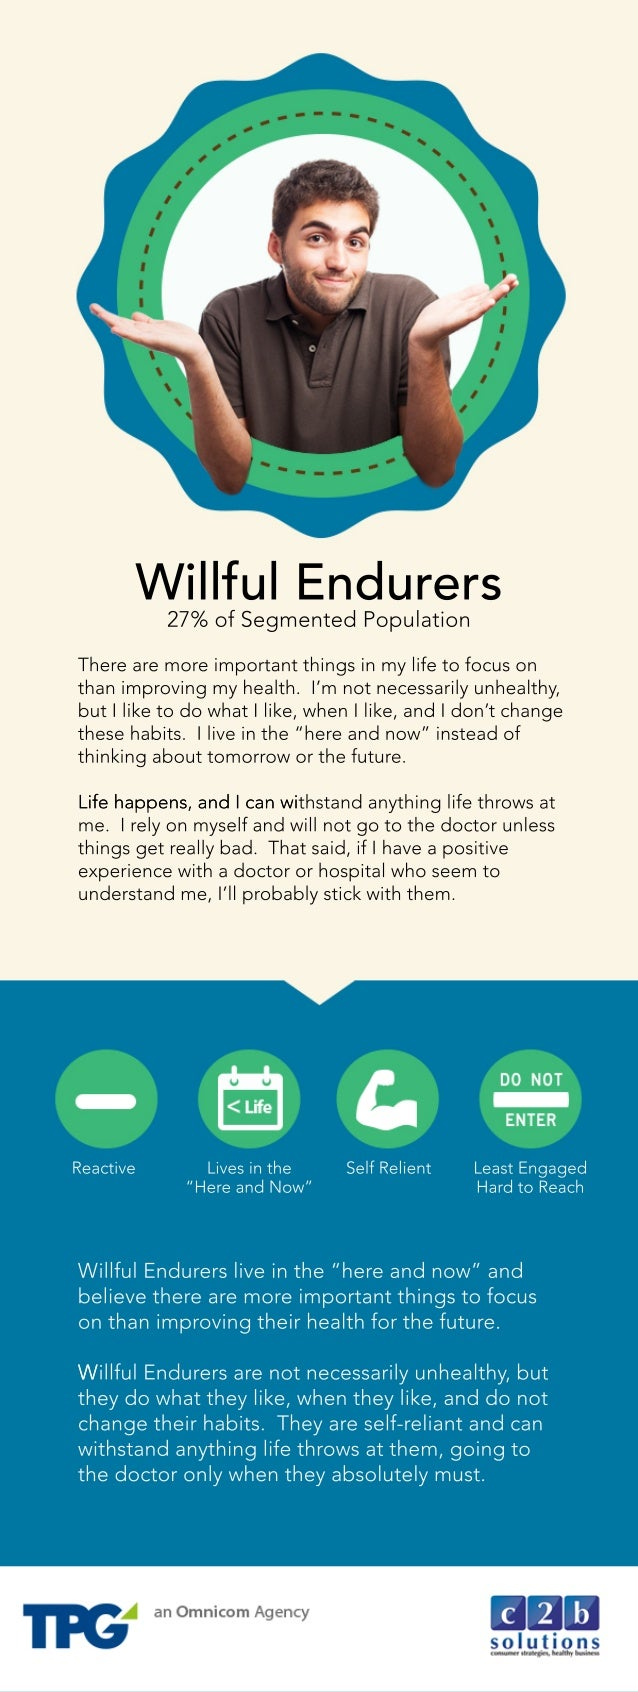 Willful Endurers Profile: Psychographic Segmentation of the Healthcare Consumer